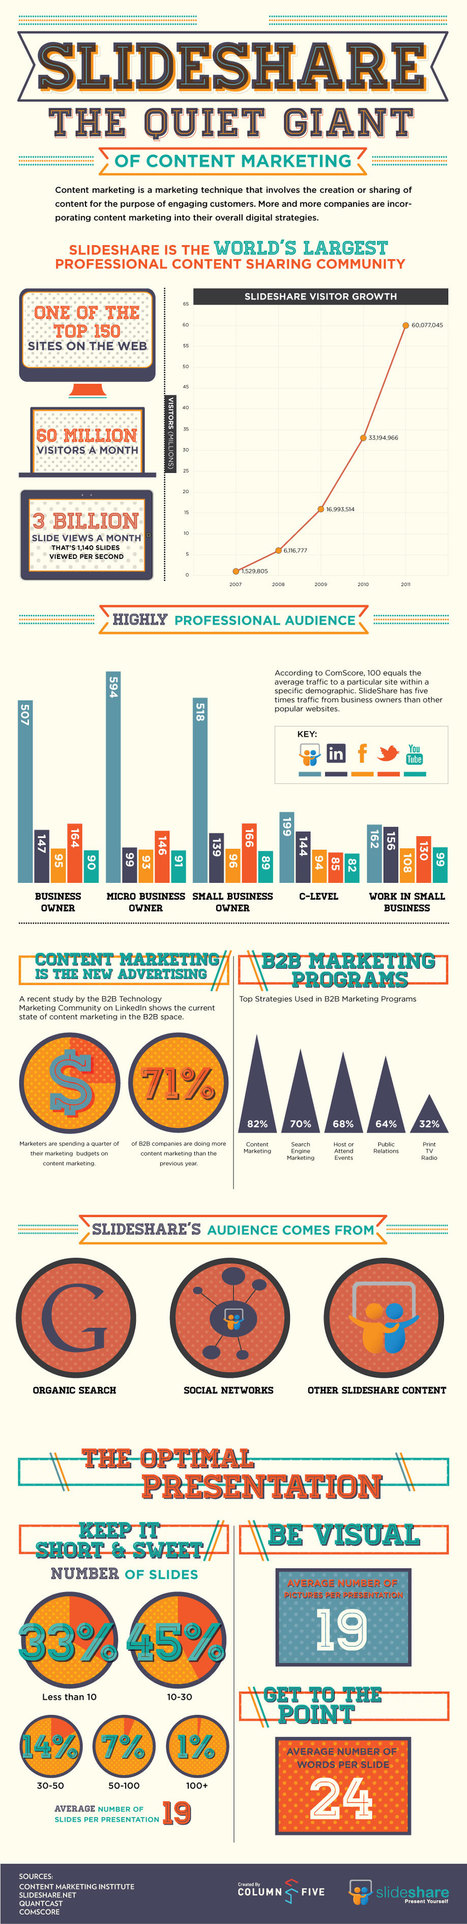 Slideshare Infographic: The Quiet Giant of Content Marketing | Collaborationweb | Scoop.it